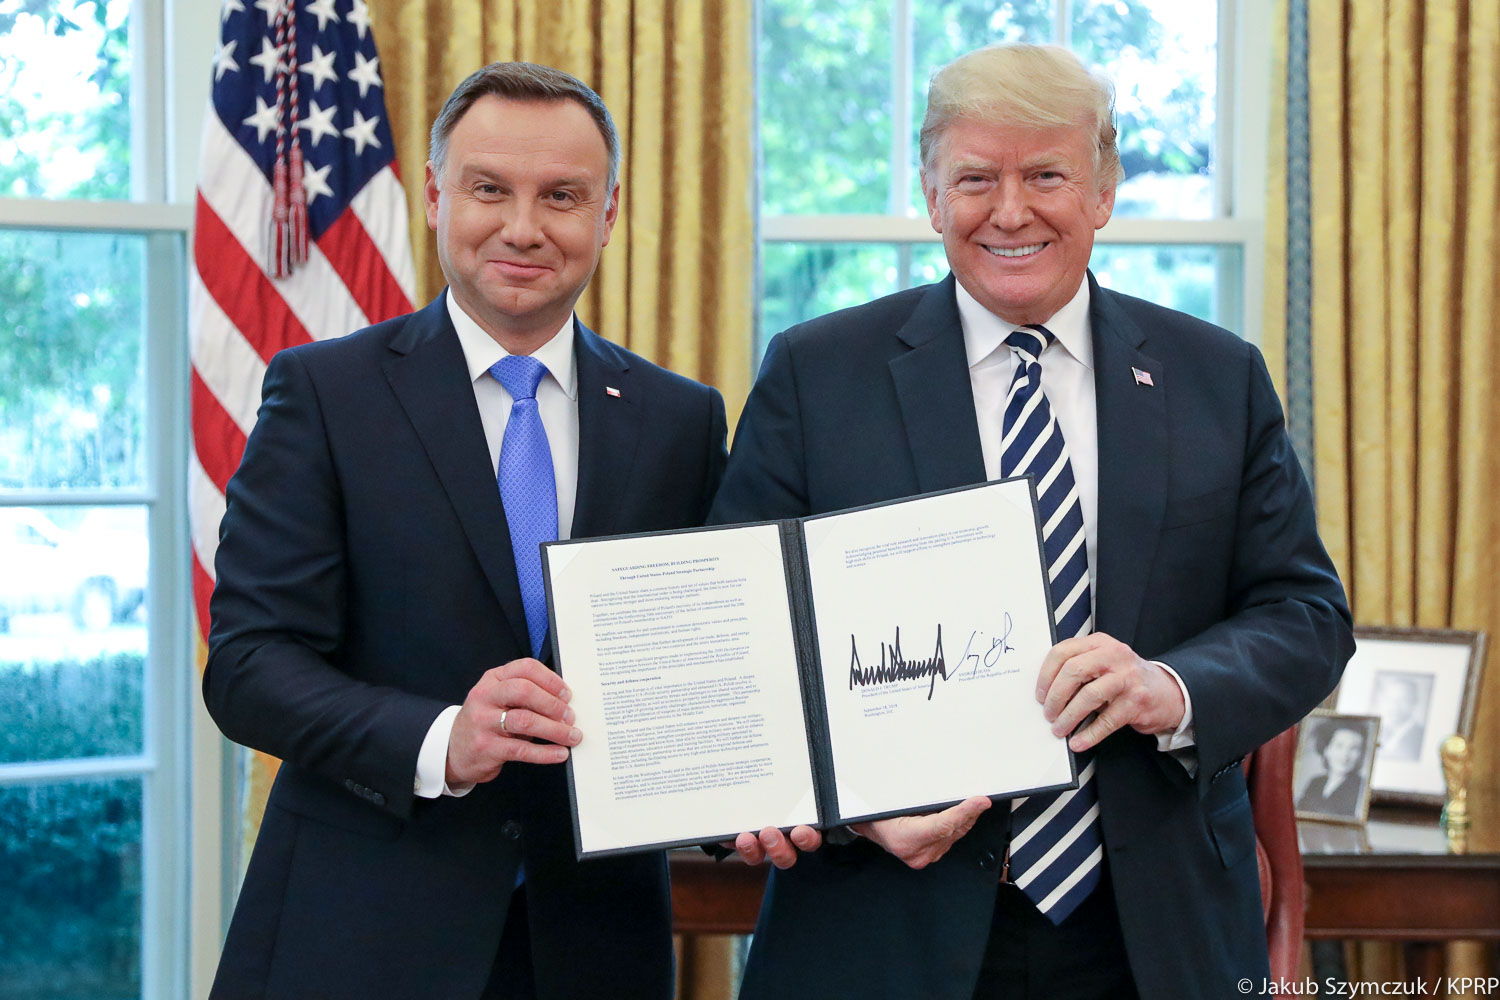 1,000 Additional Troops: Trump And Duda Sign Declaration to Increase US Presence In Poland